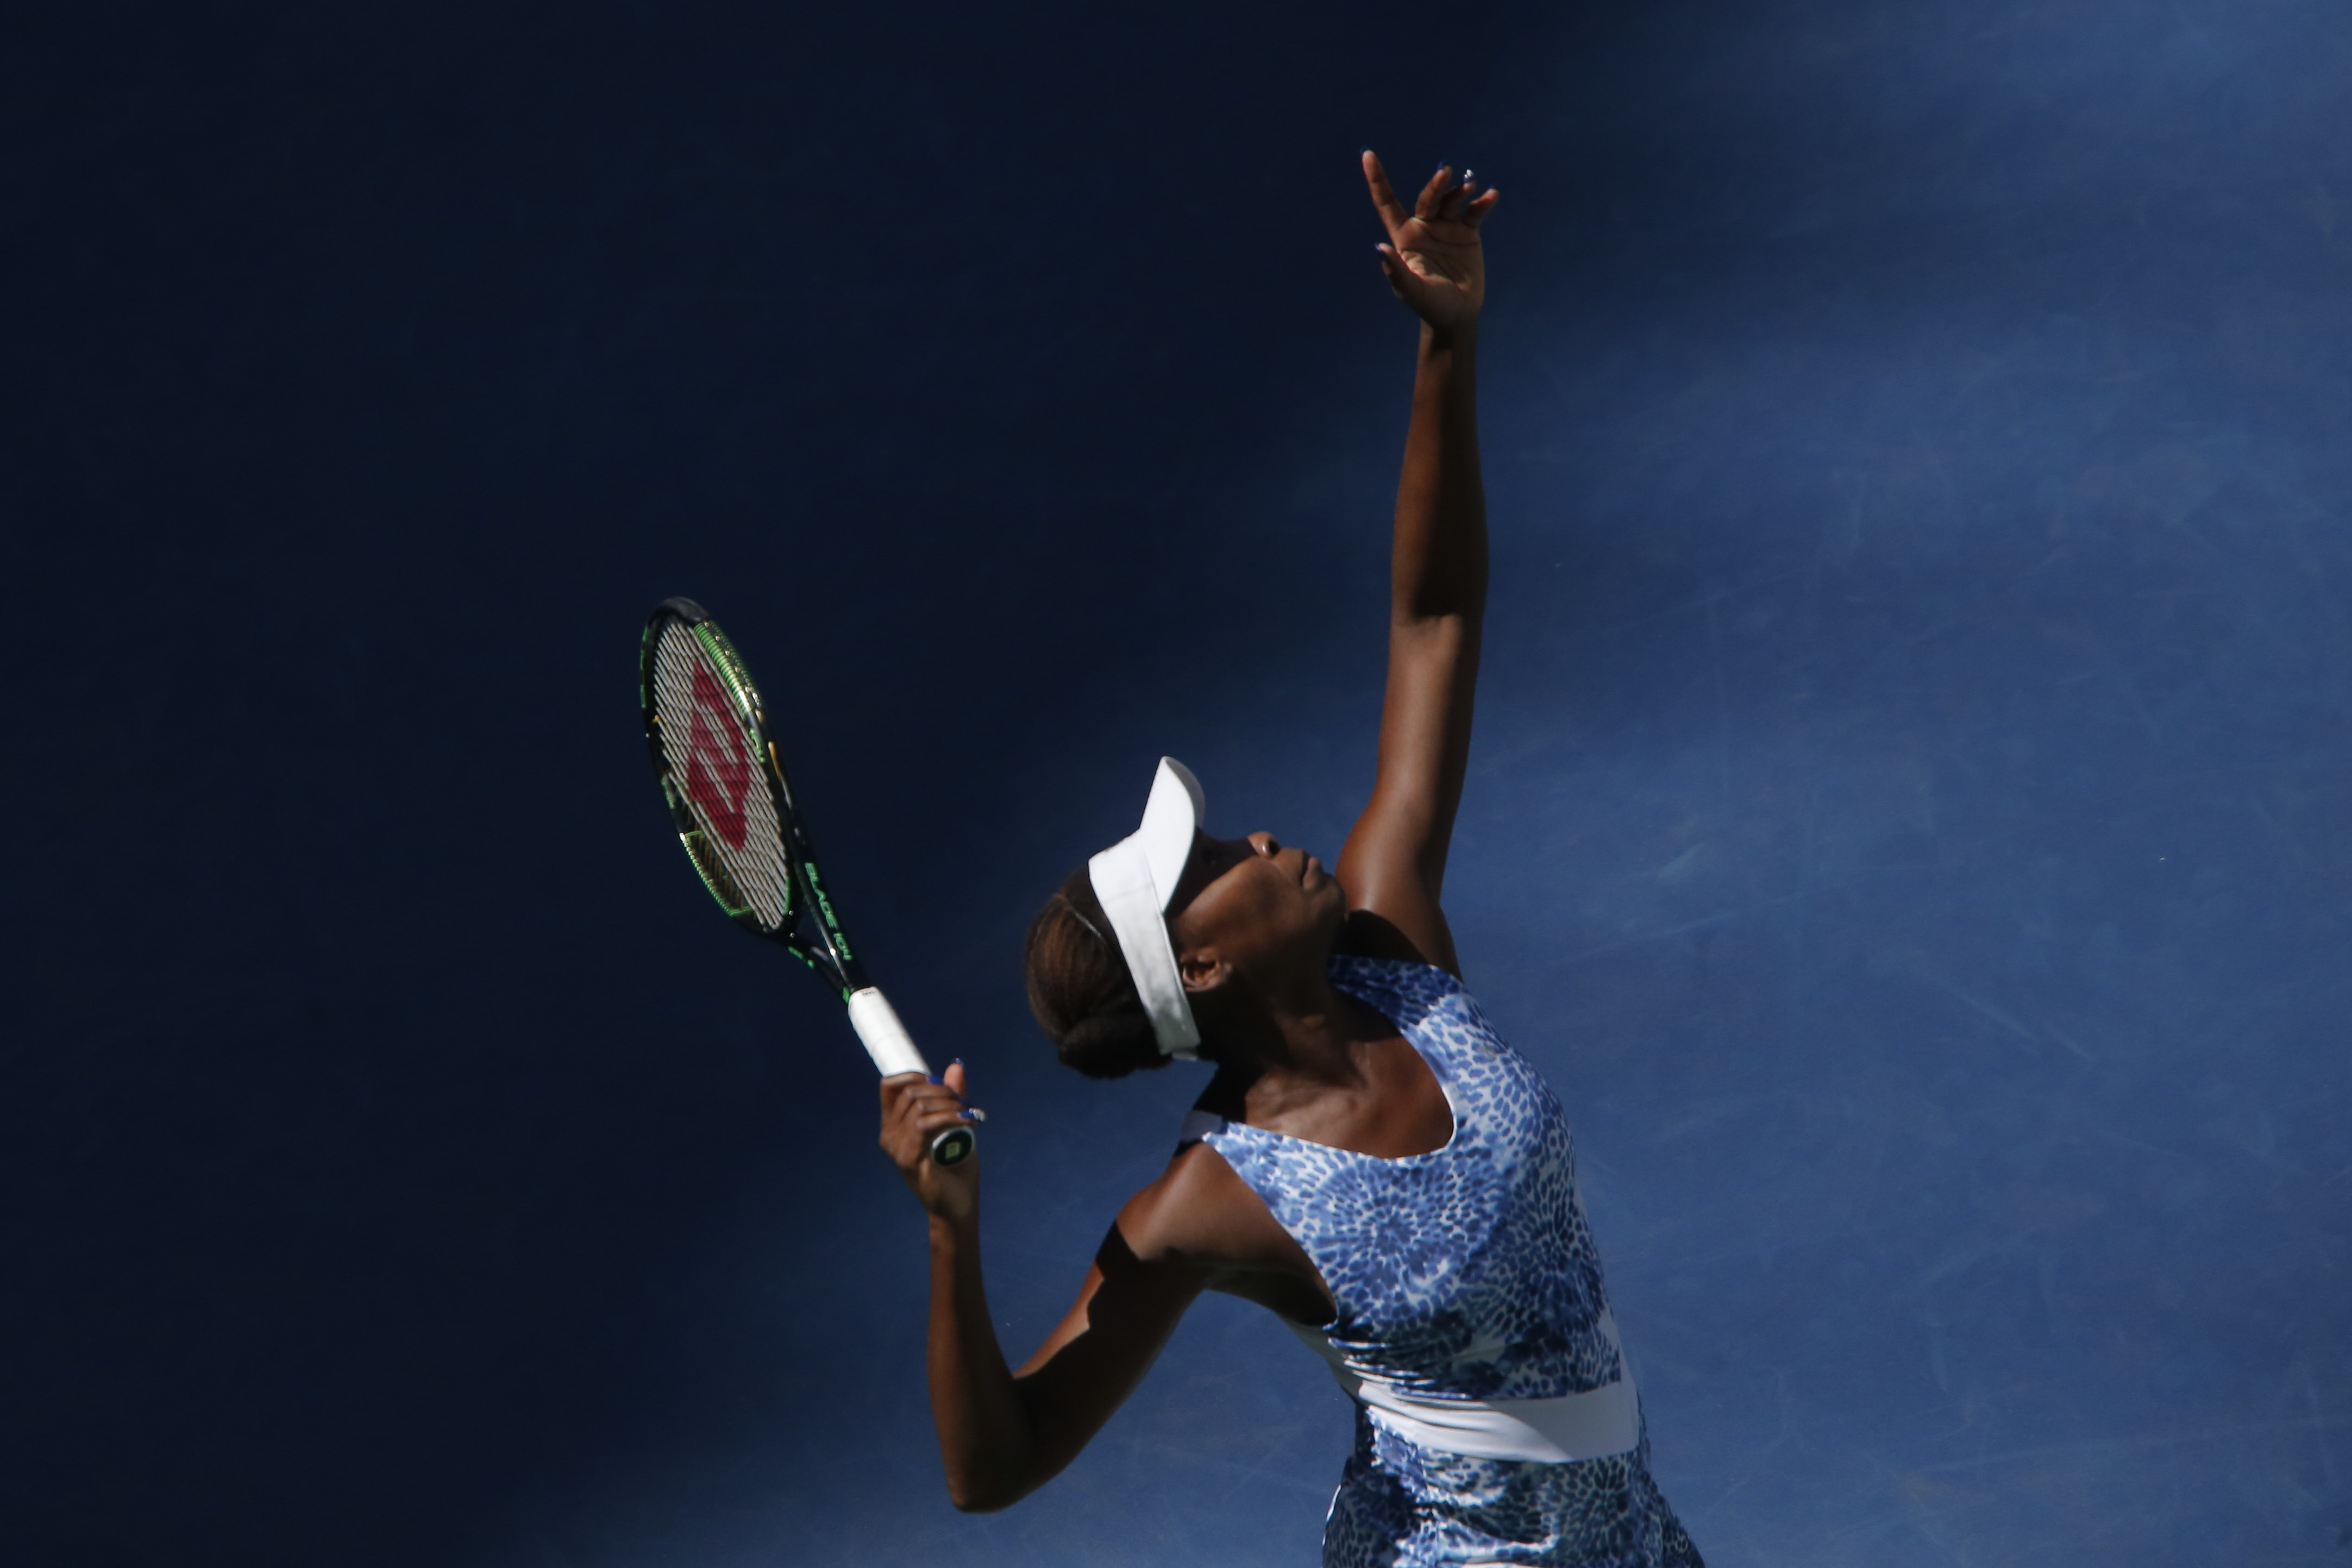 7 Extraordinary Venus Williams Quotes That Prove Sheu0027s A Force To Be  Reckoned With